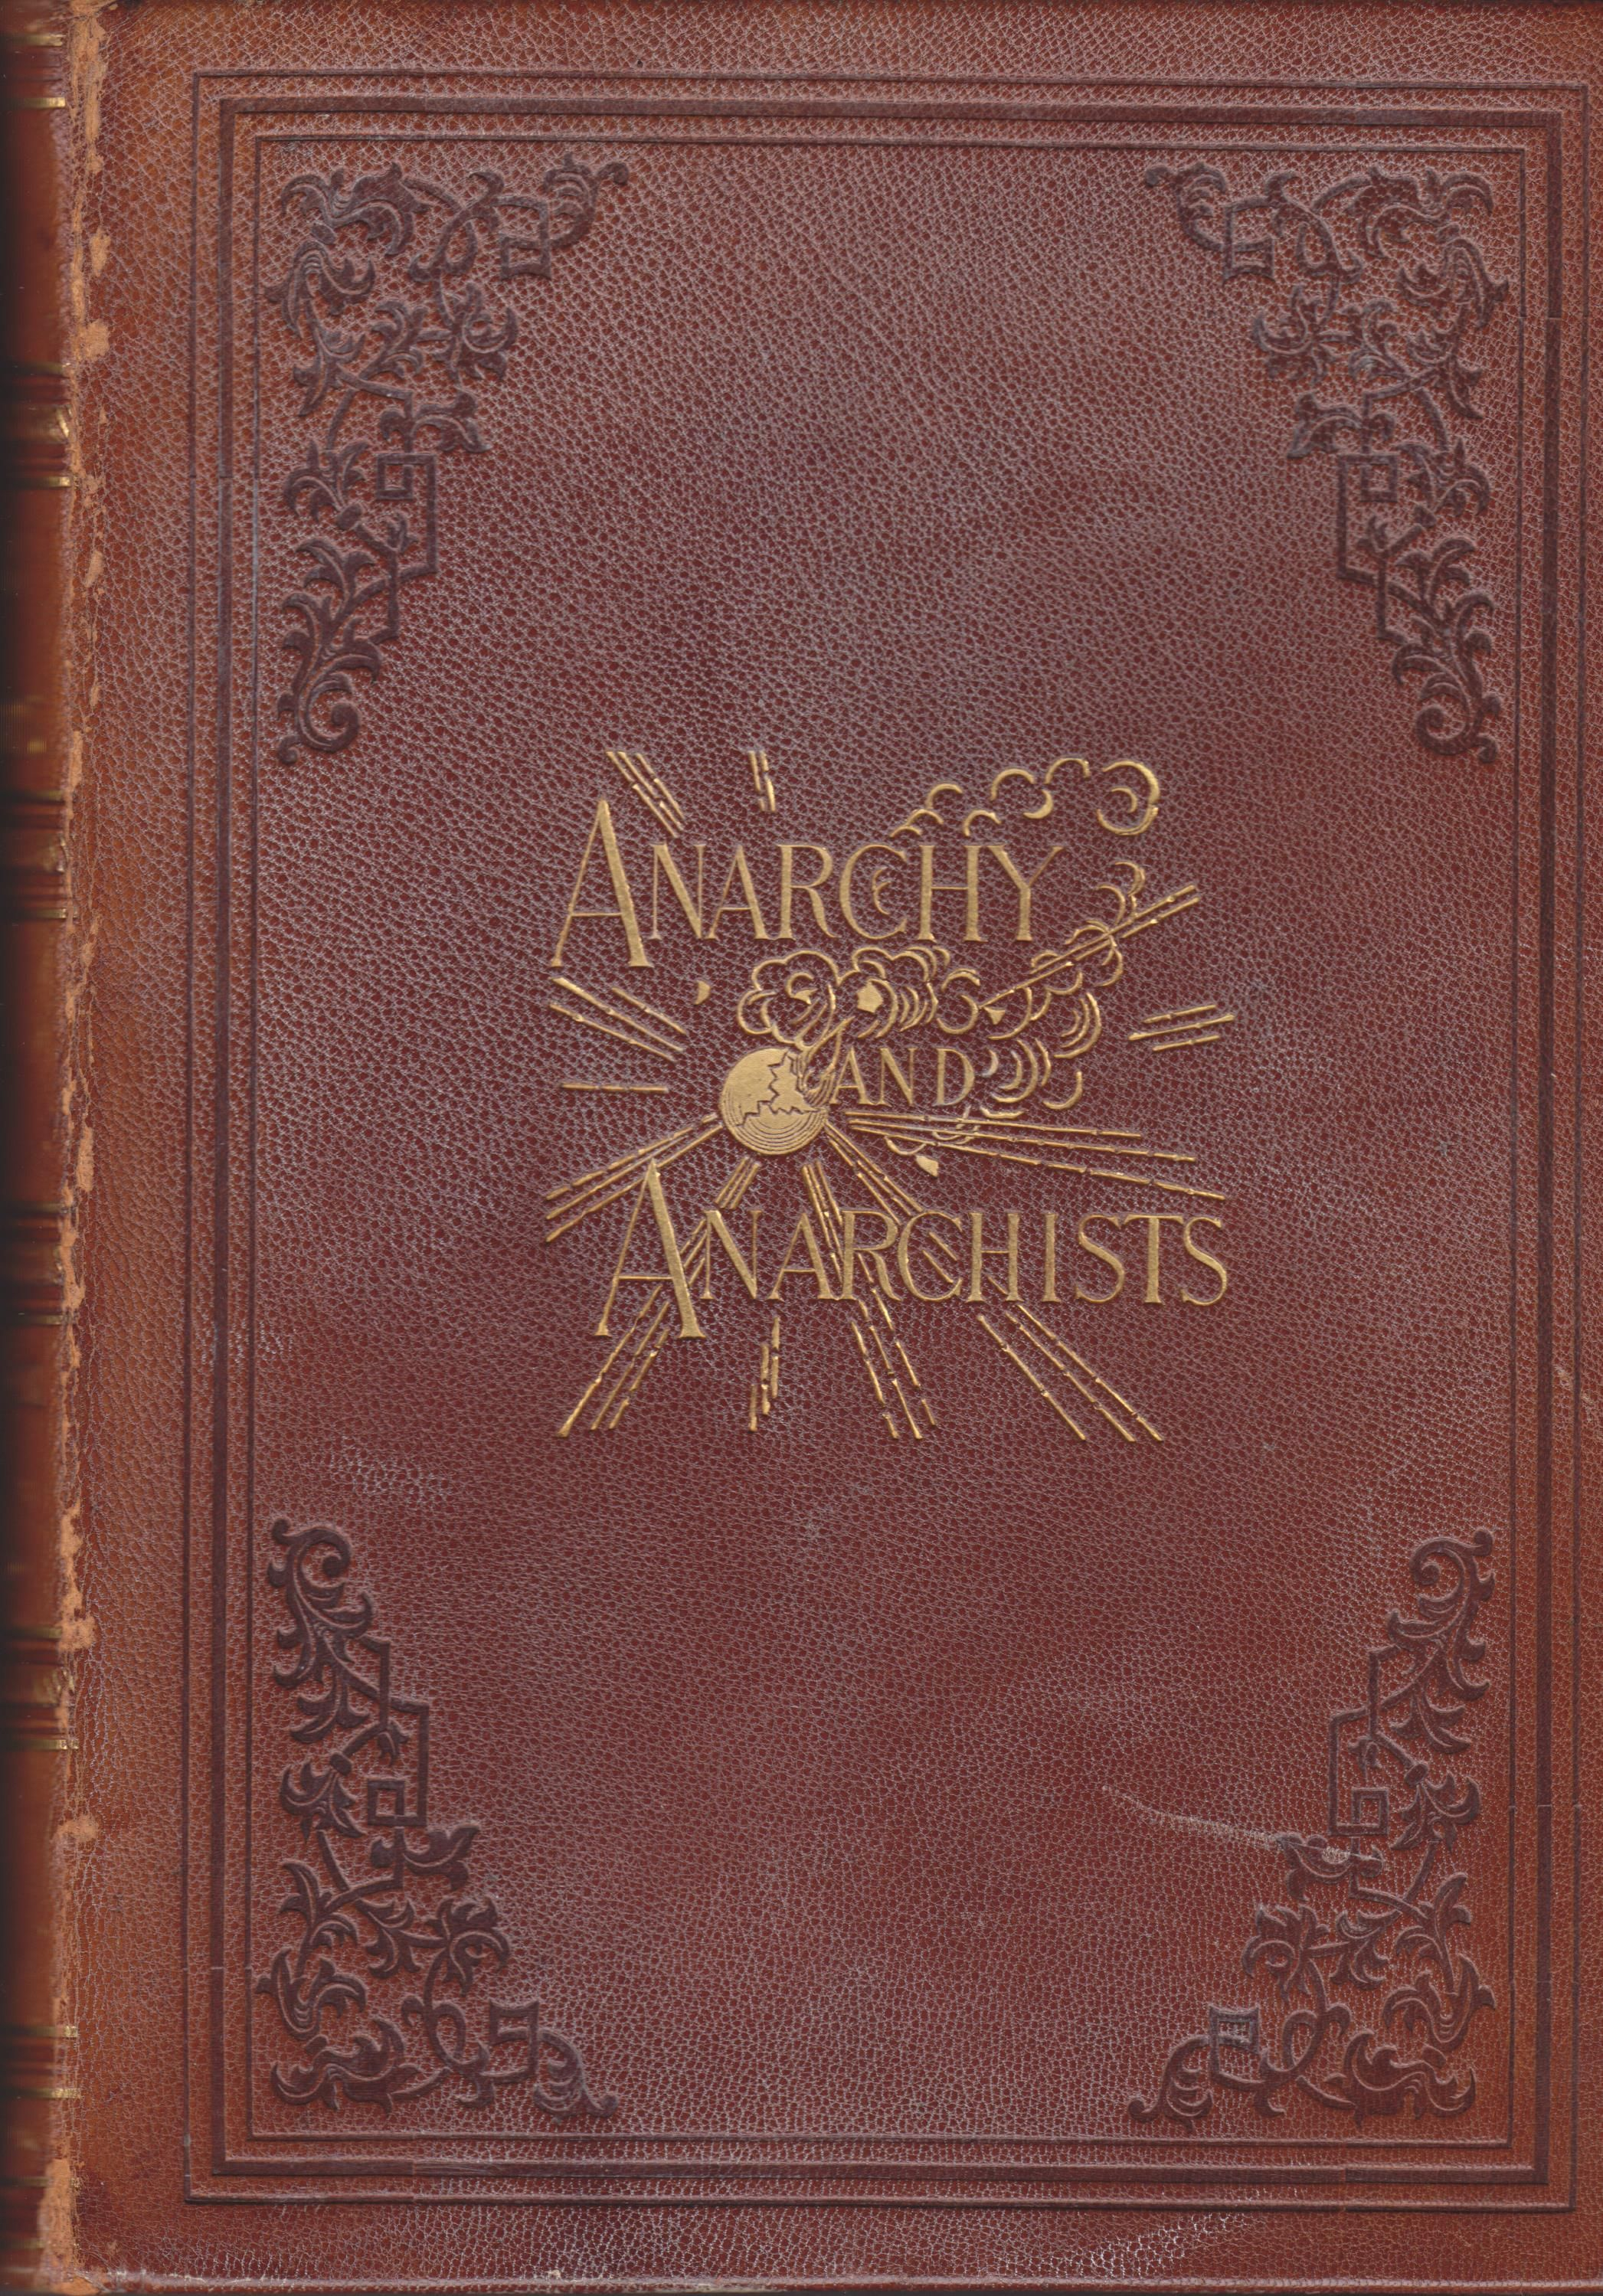 Image for Anarchy and Anarchists. A History of the Red Terror and the Social Revolution in America and Europe. Communism, Socialism and Nihilism in Doctrine and Creed. The Chicago Haymarket Conspiracy, and the detection and trial of the Conspirators